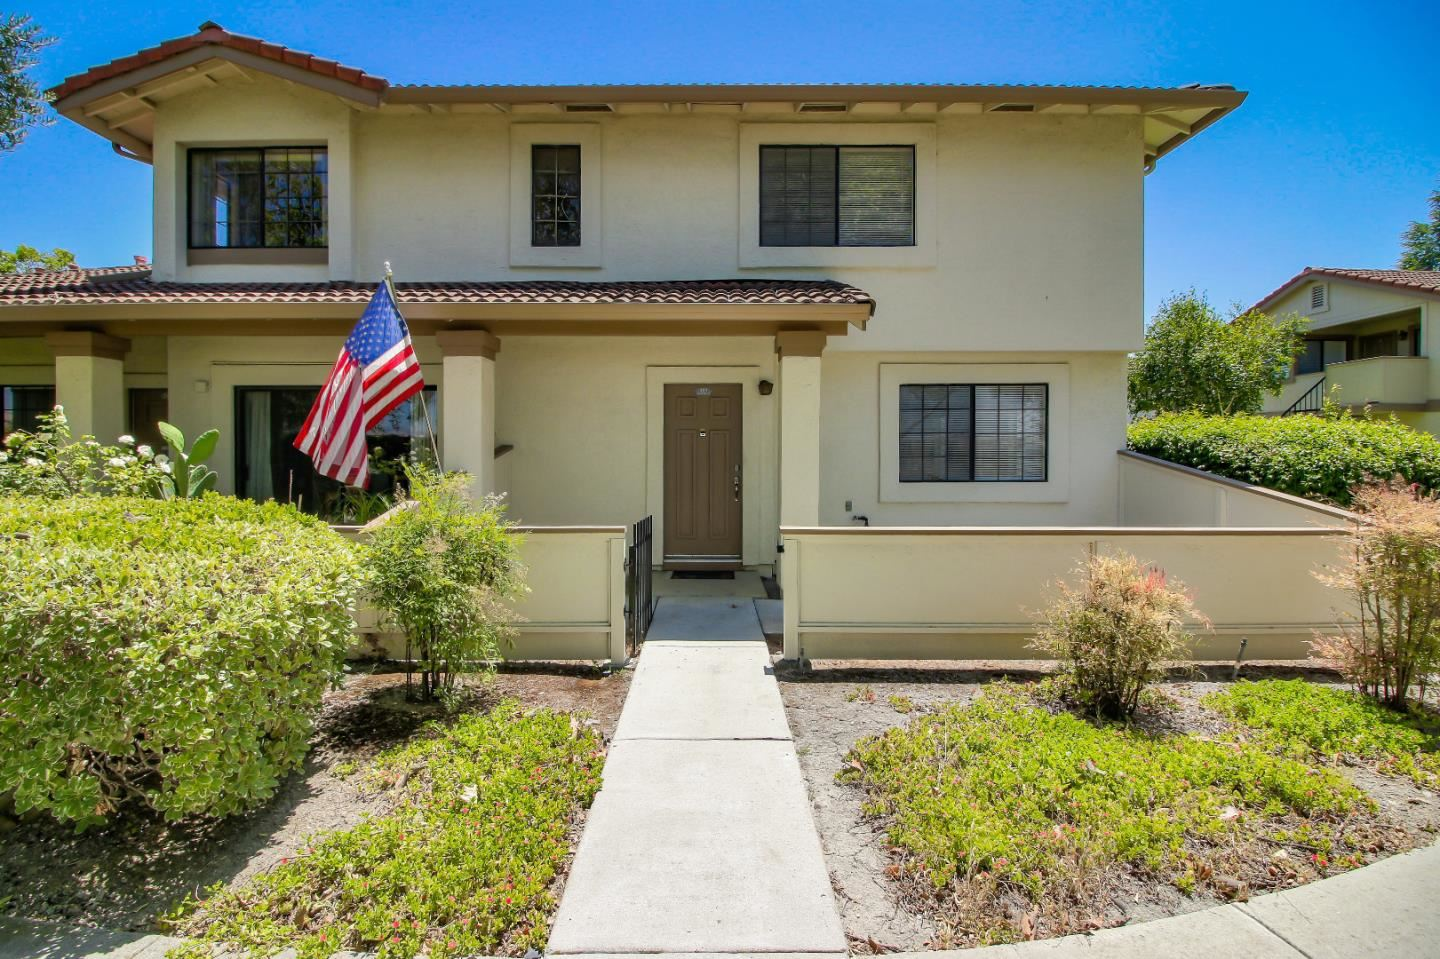 Photo for 407 Colony Crest DR, SAN JOSE, CA 95123 (MLS # ML81799002)